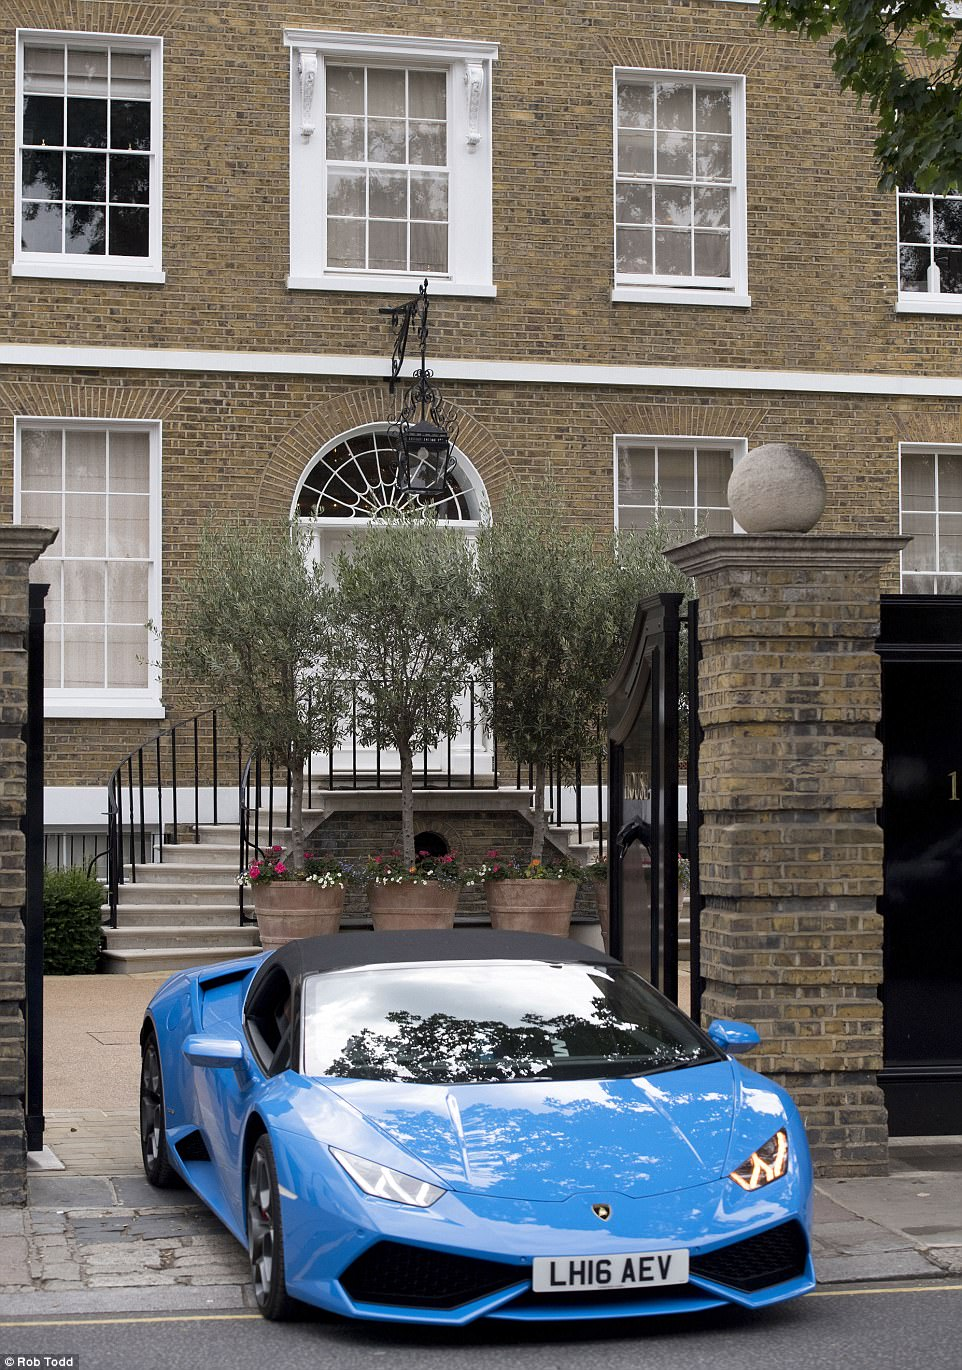 As the supercars continued to flow from the drive this £180,000 Lamborghini Huracan revved its way out and into Chelsea